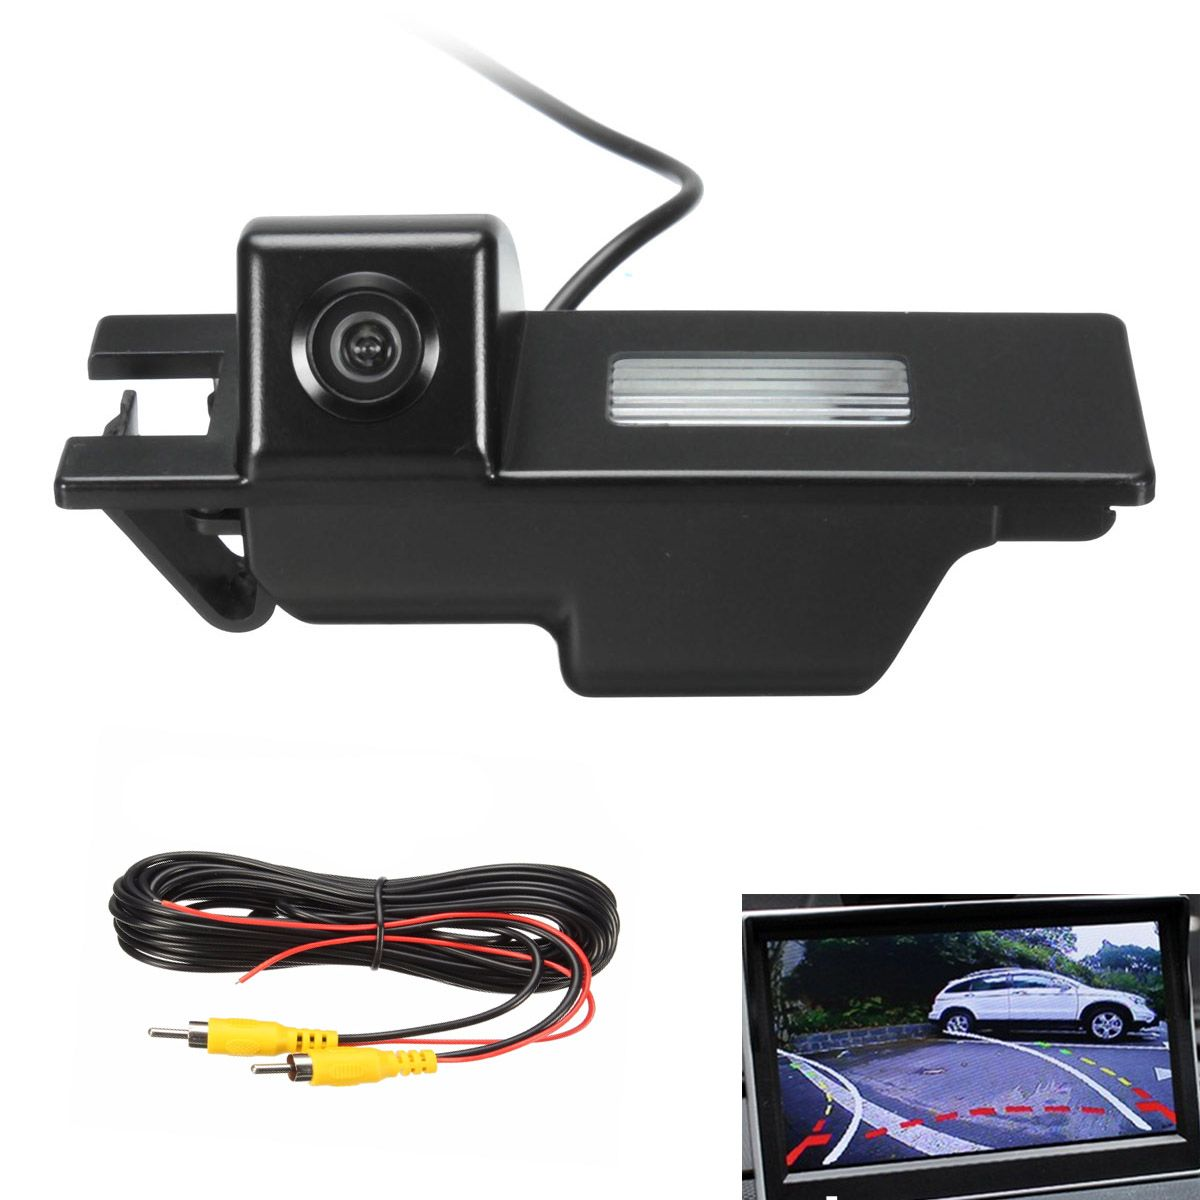 2016 Newest Rear View Reversing Camera Cam For Opel /Vauxhall /Corsa /Astra /Zafira /Vectra